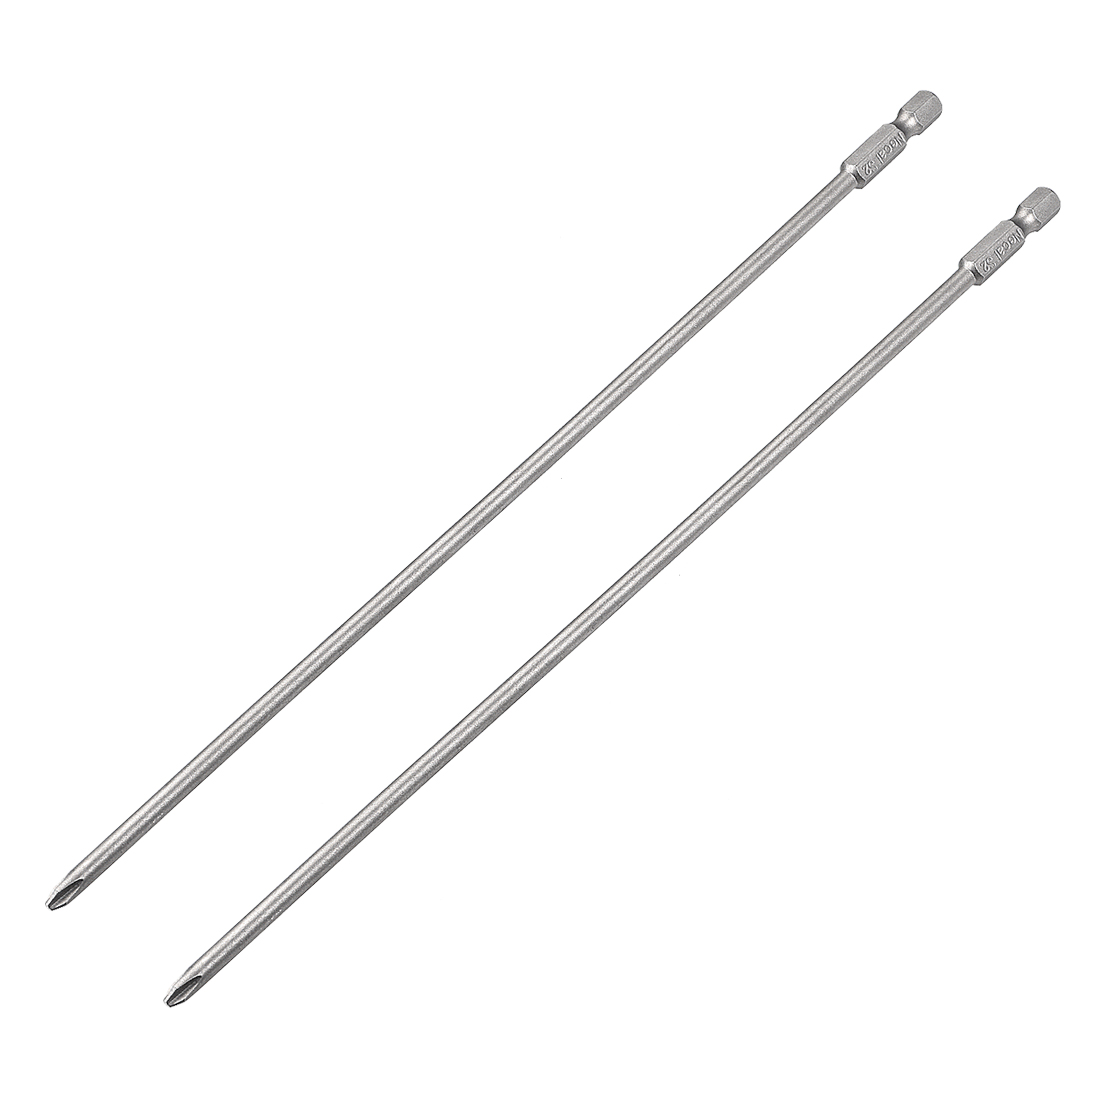 Uxcell 2pcs 1/4-Inch Hex Shank 250mm Length Phillips 5PH2 Magnetic Screw Driver S2 Screwdriver Bits